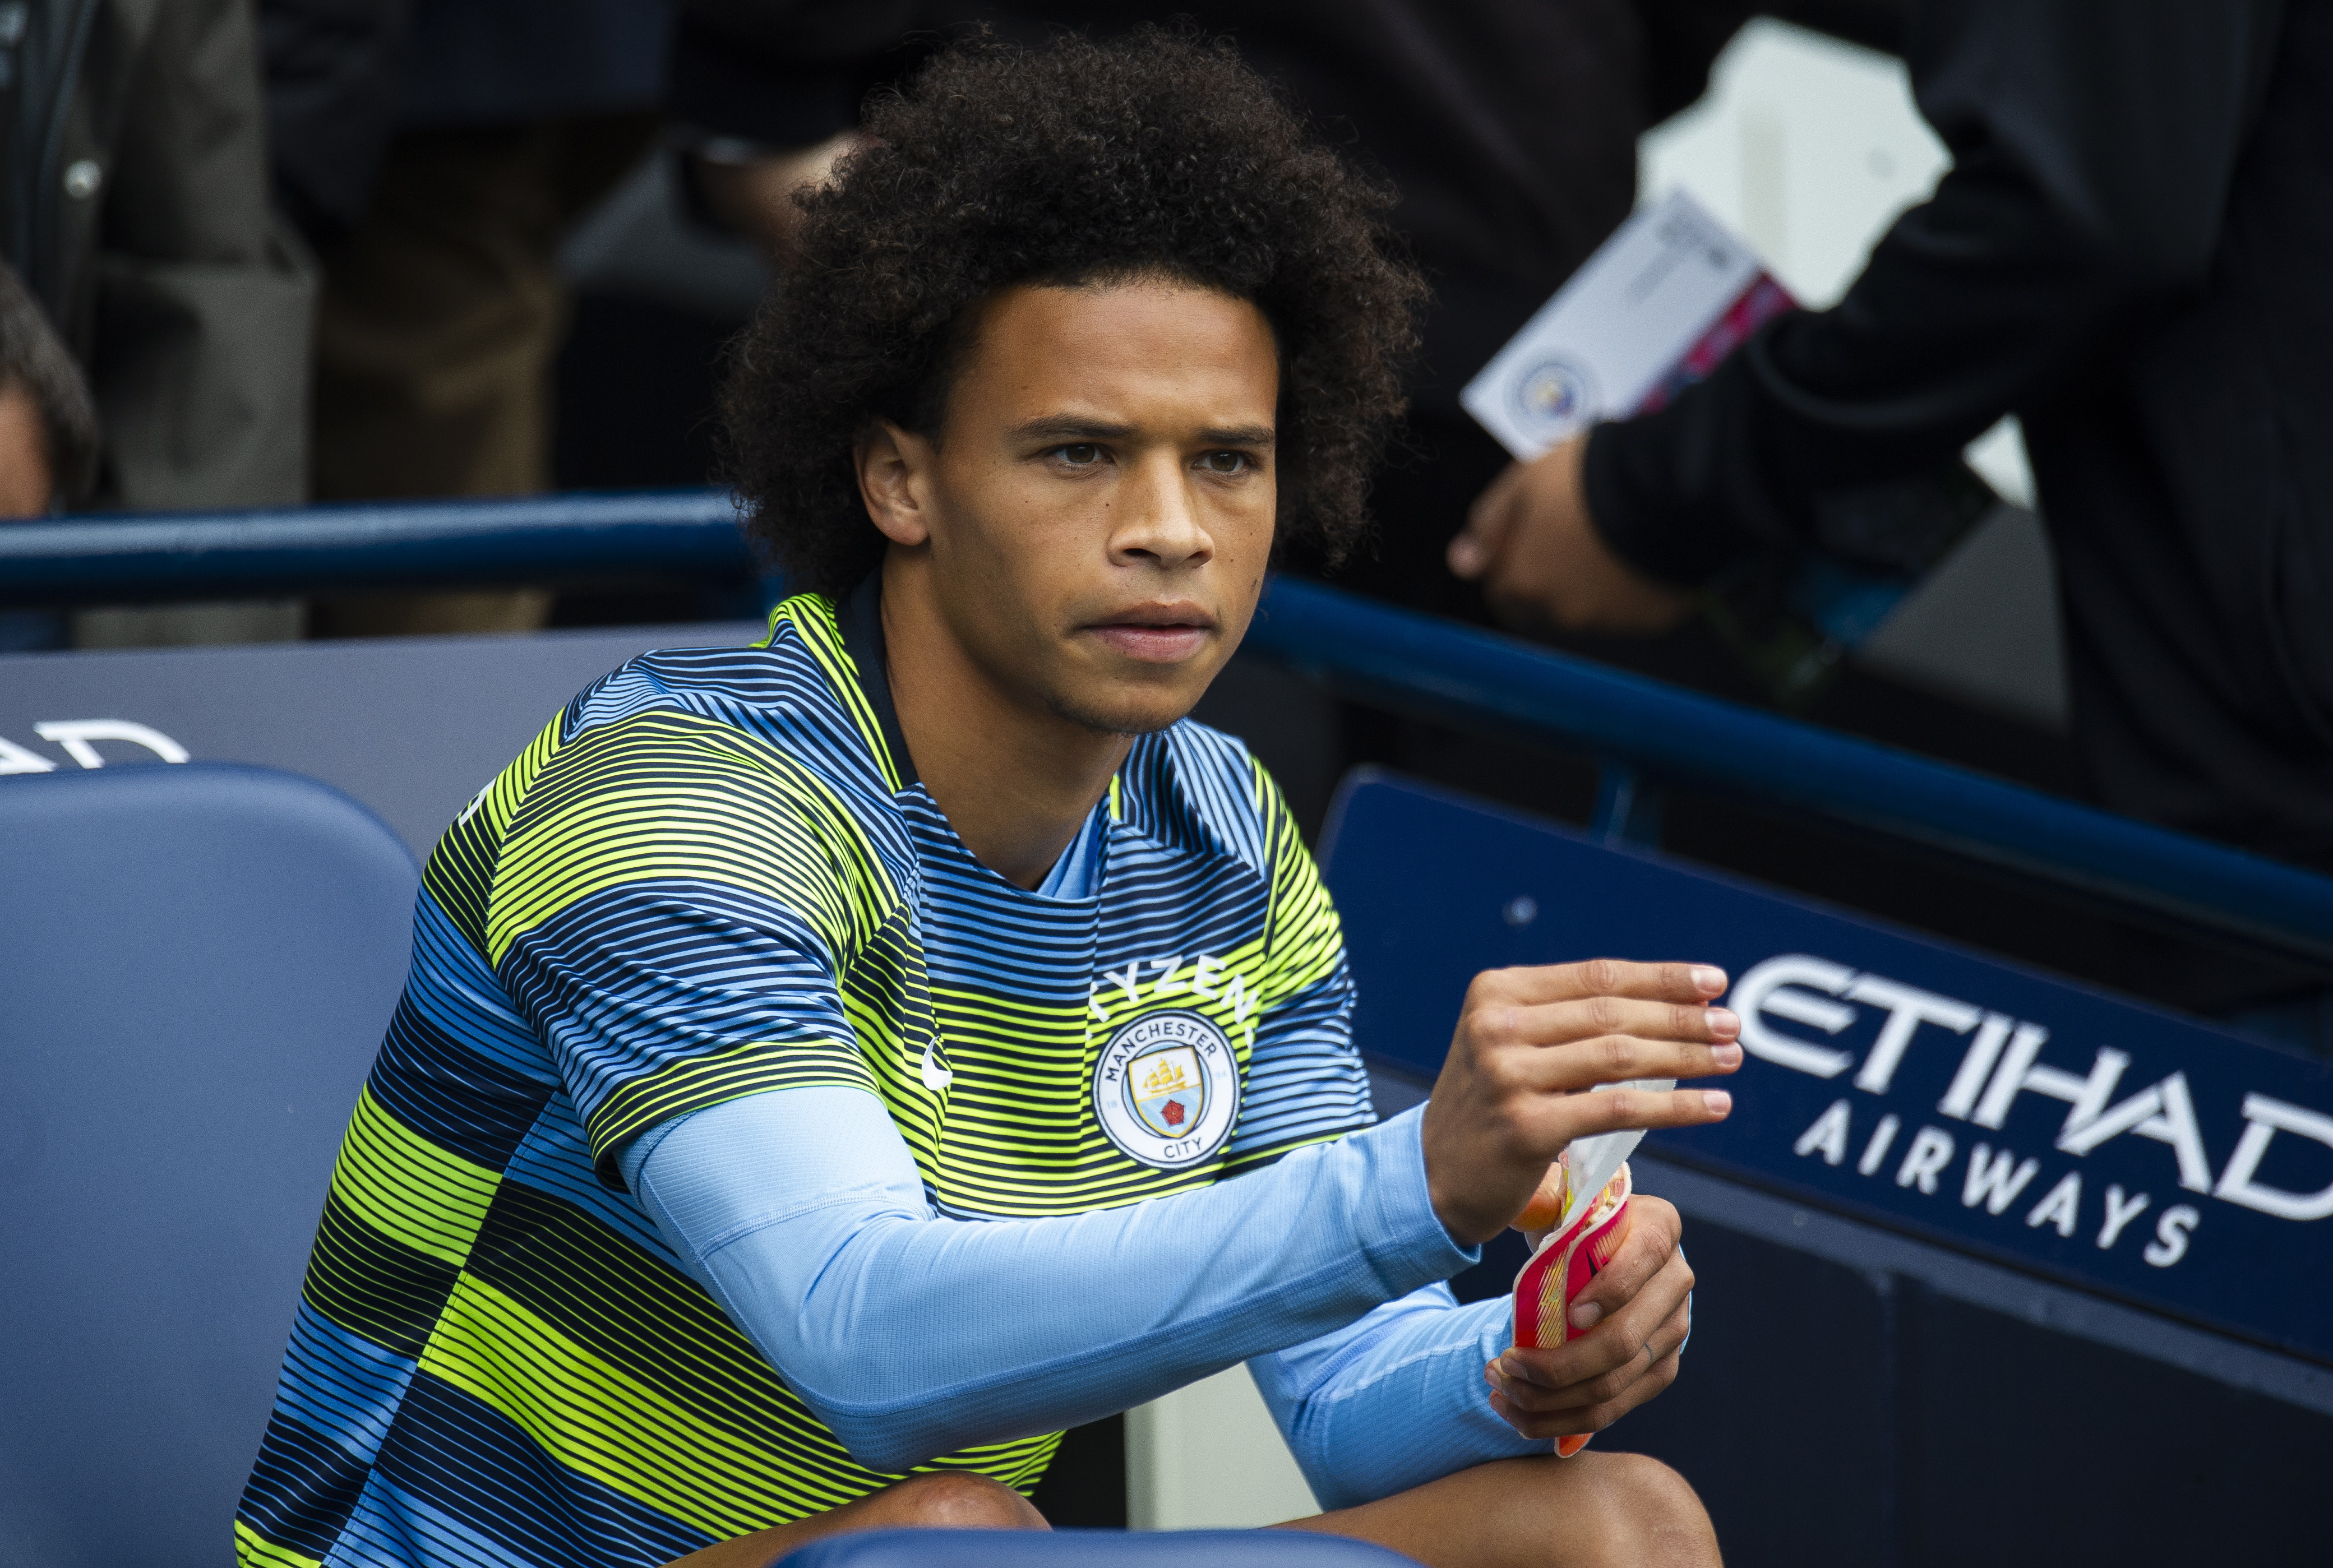 Sane spent the beginning weeks of the new season rooted to City's bench